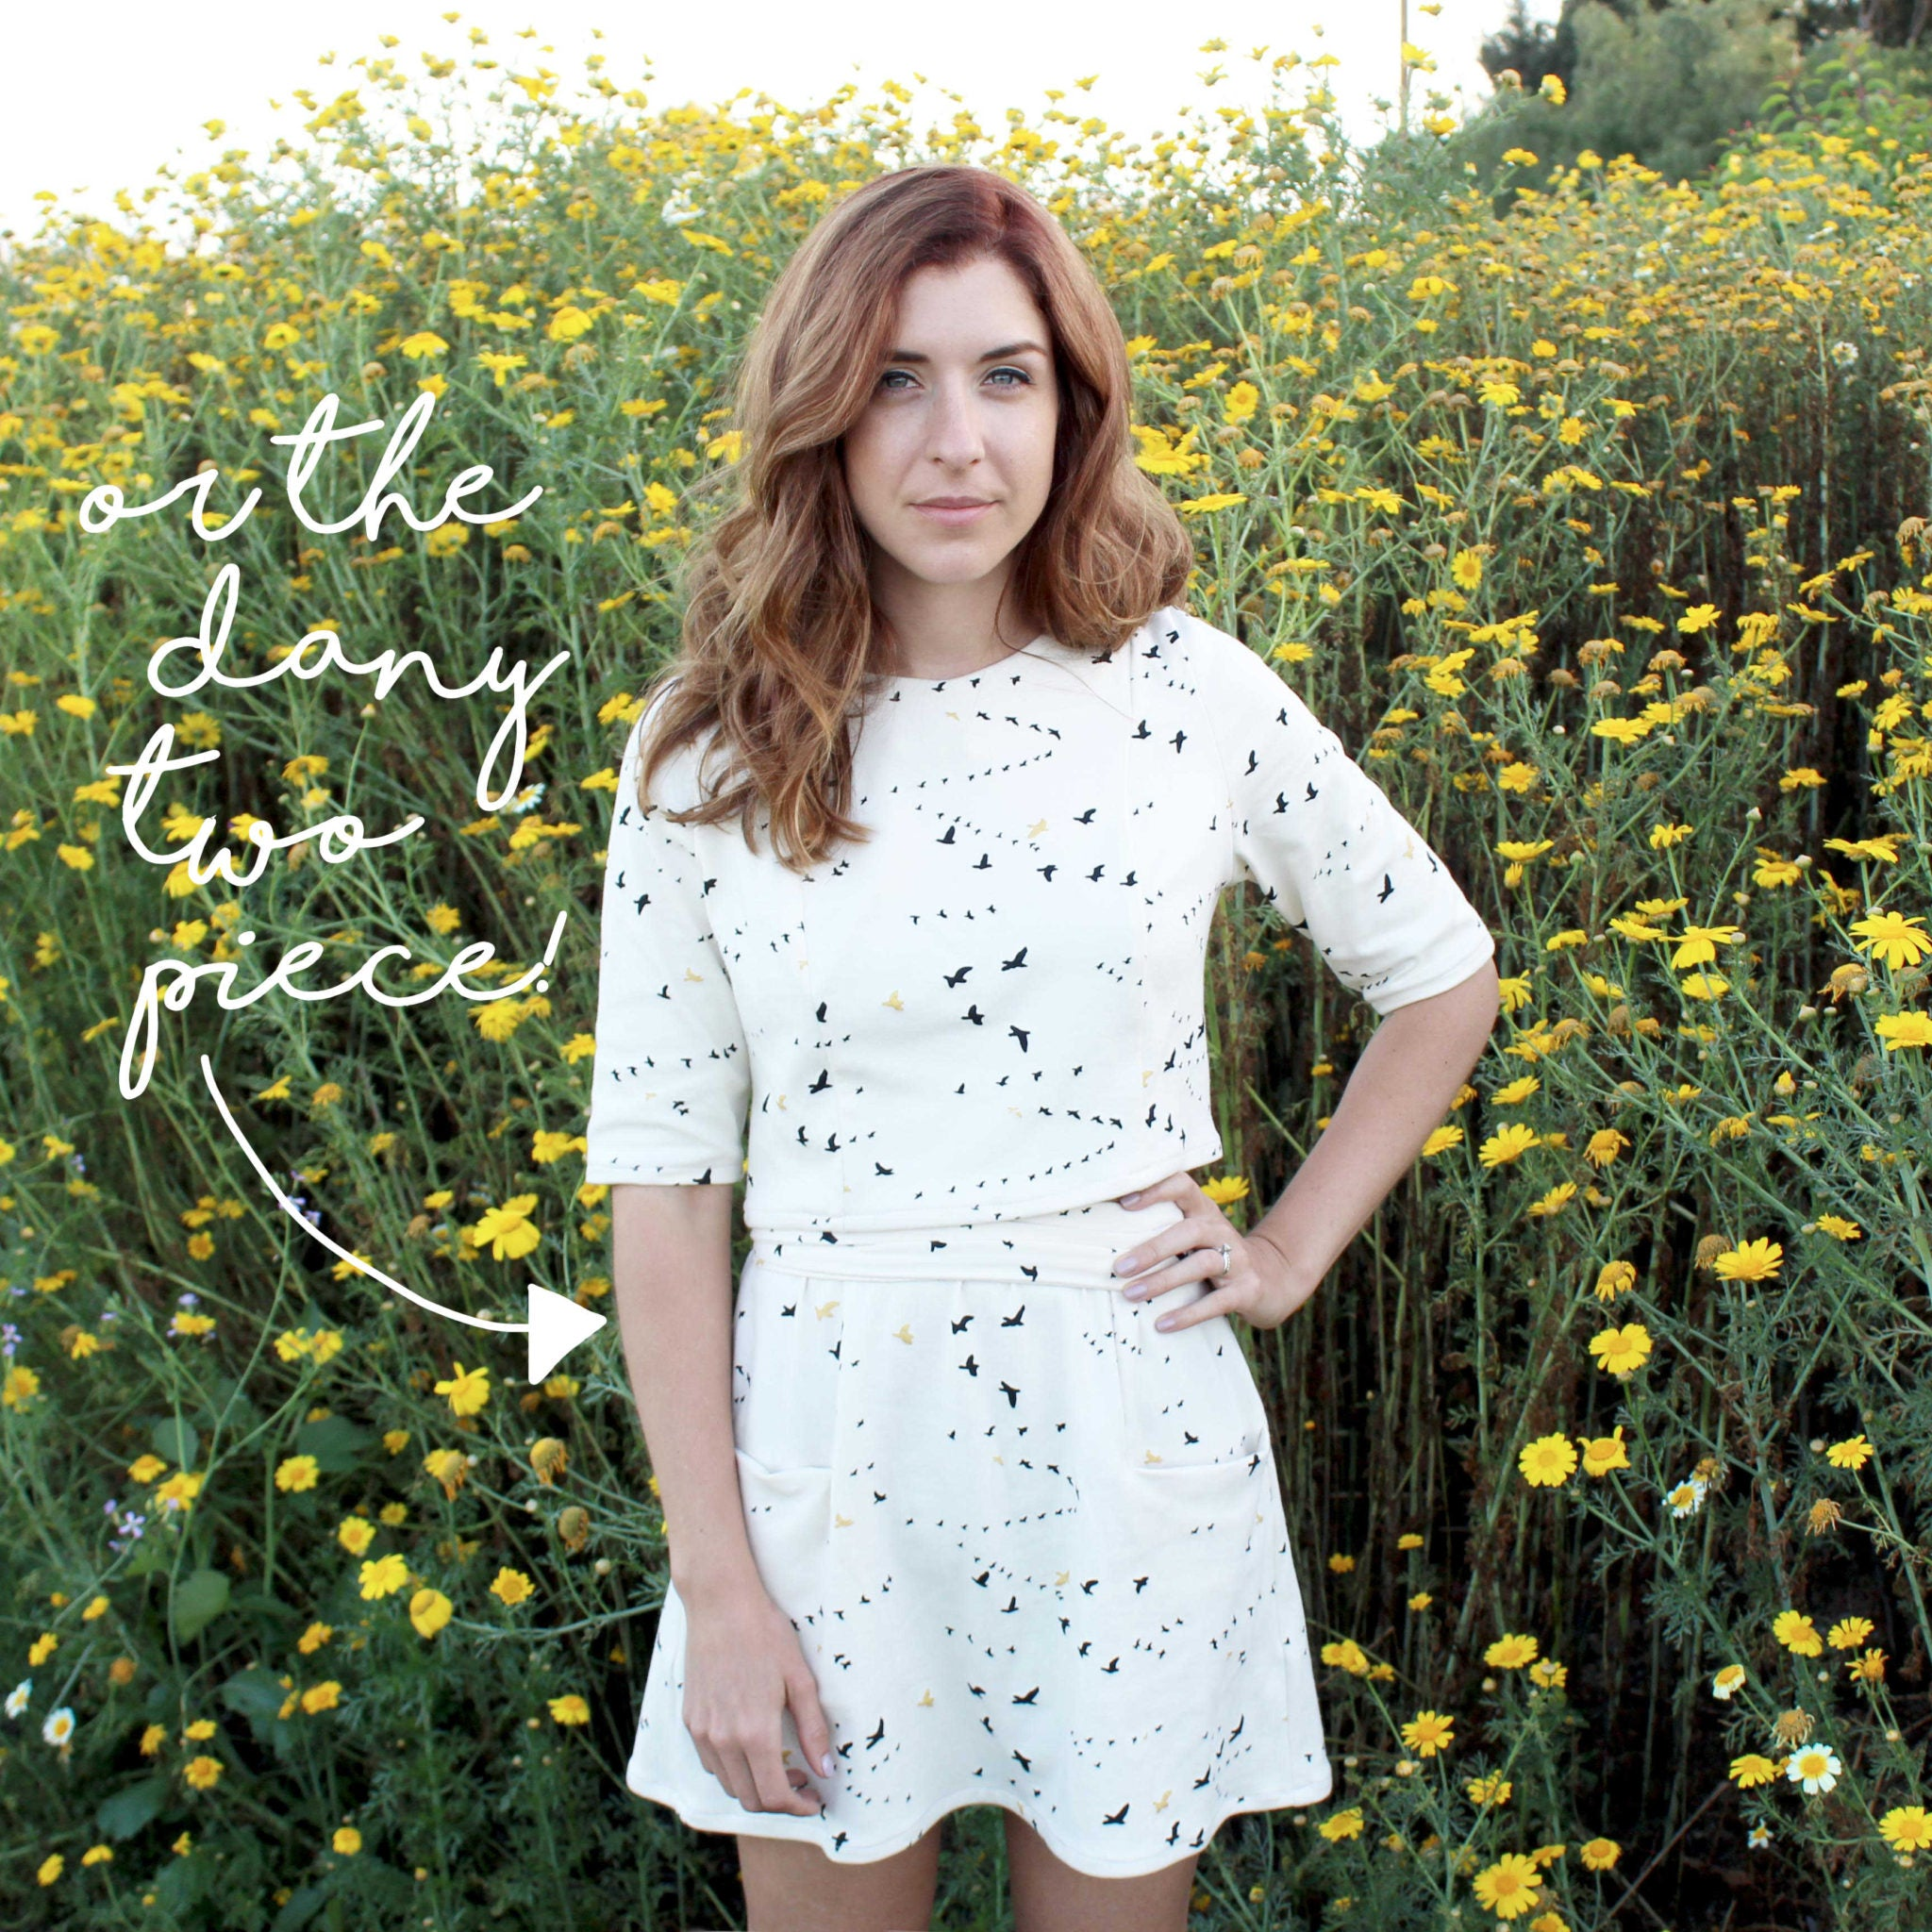 Learn How To Sew Your Own Clothes: The Dany Two Piece Sewing Project